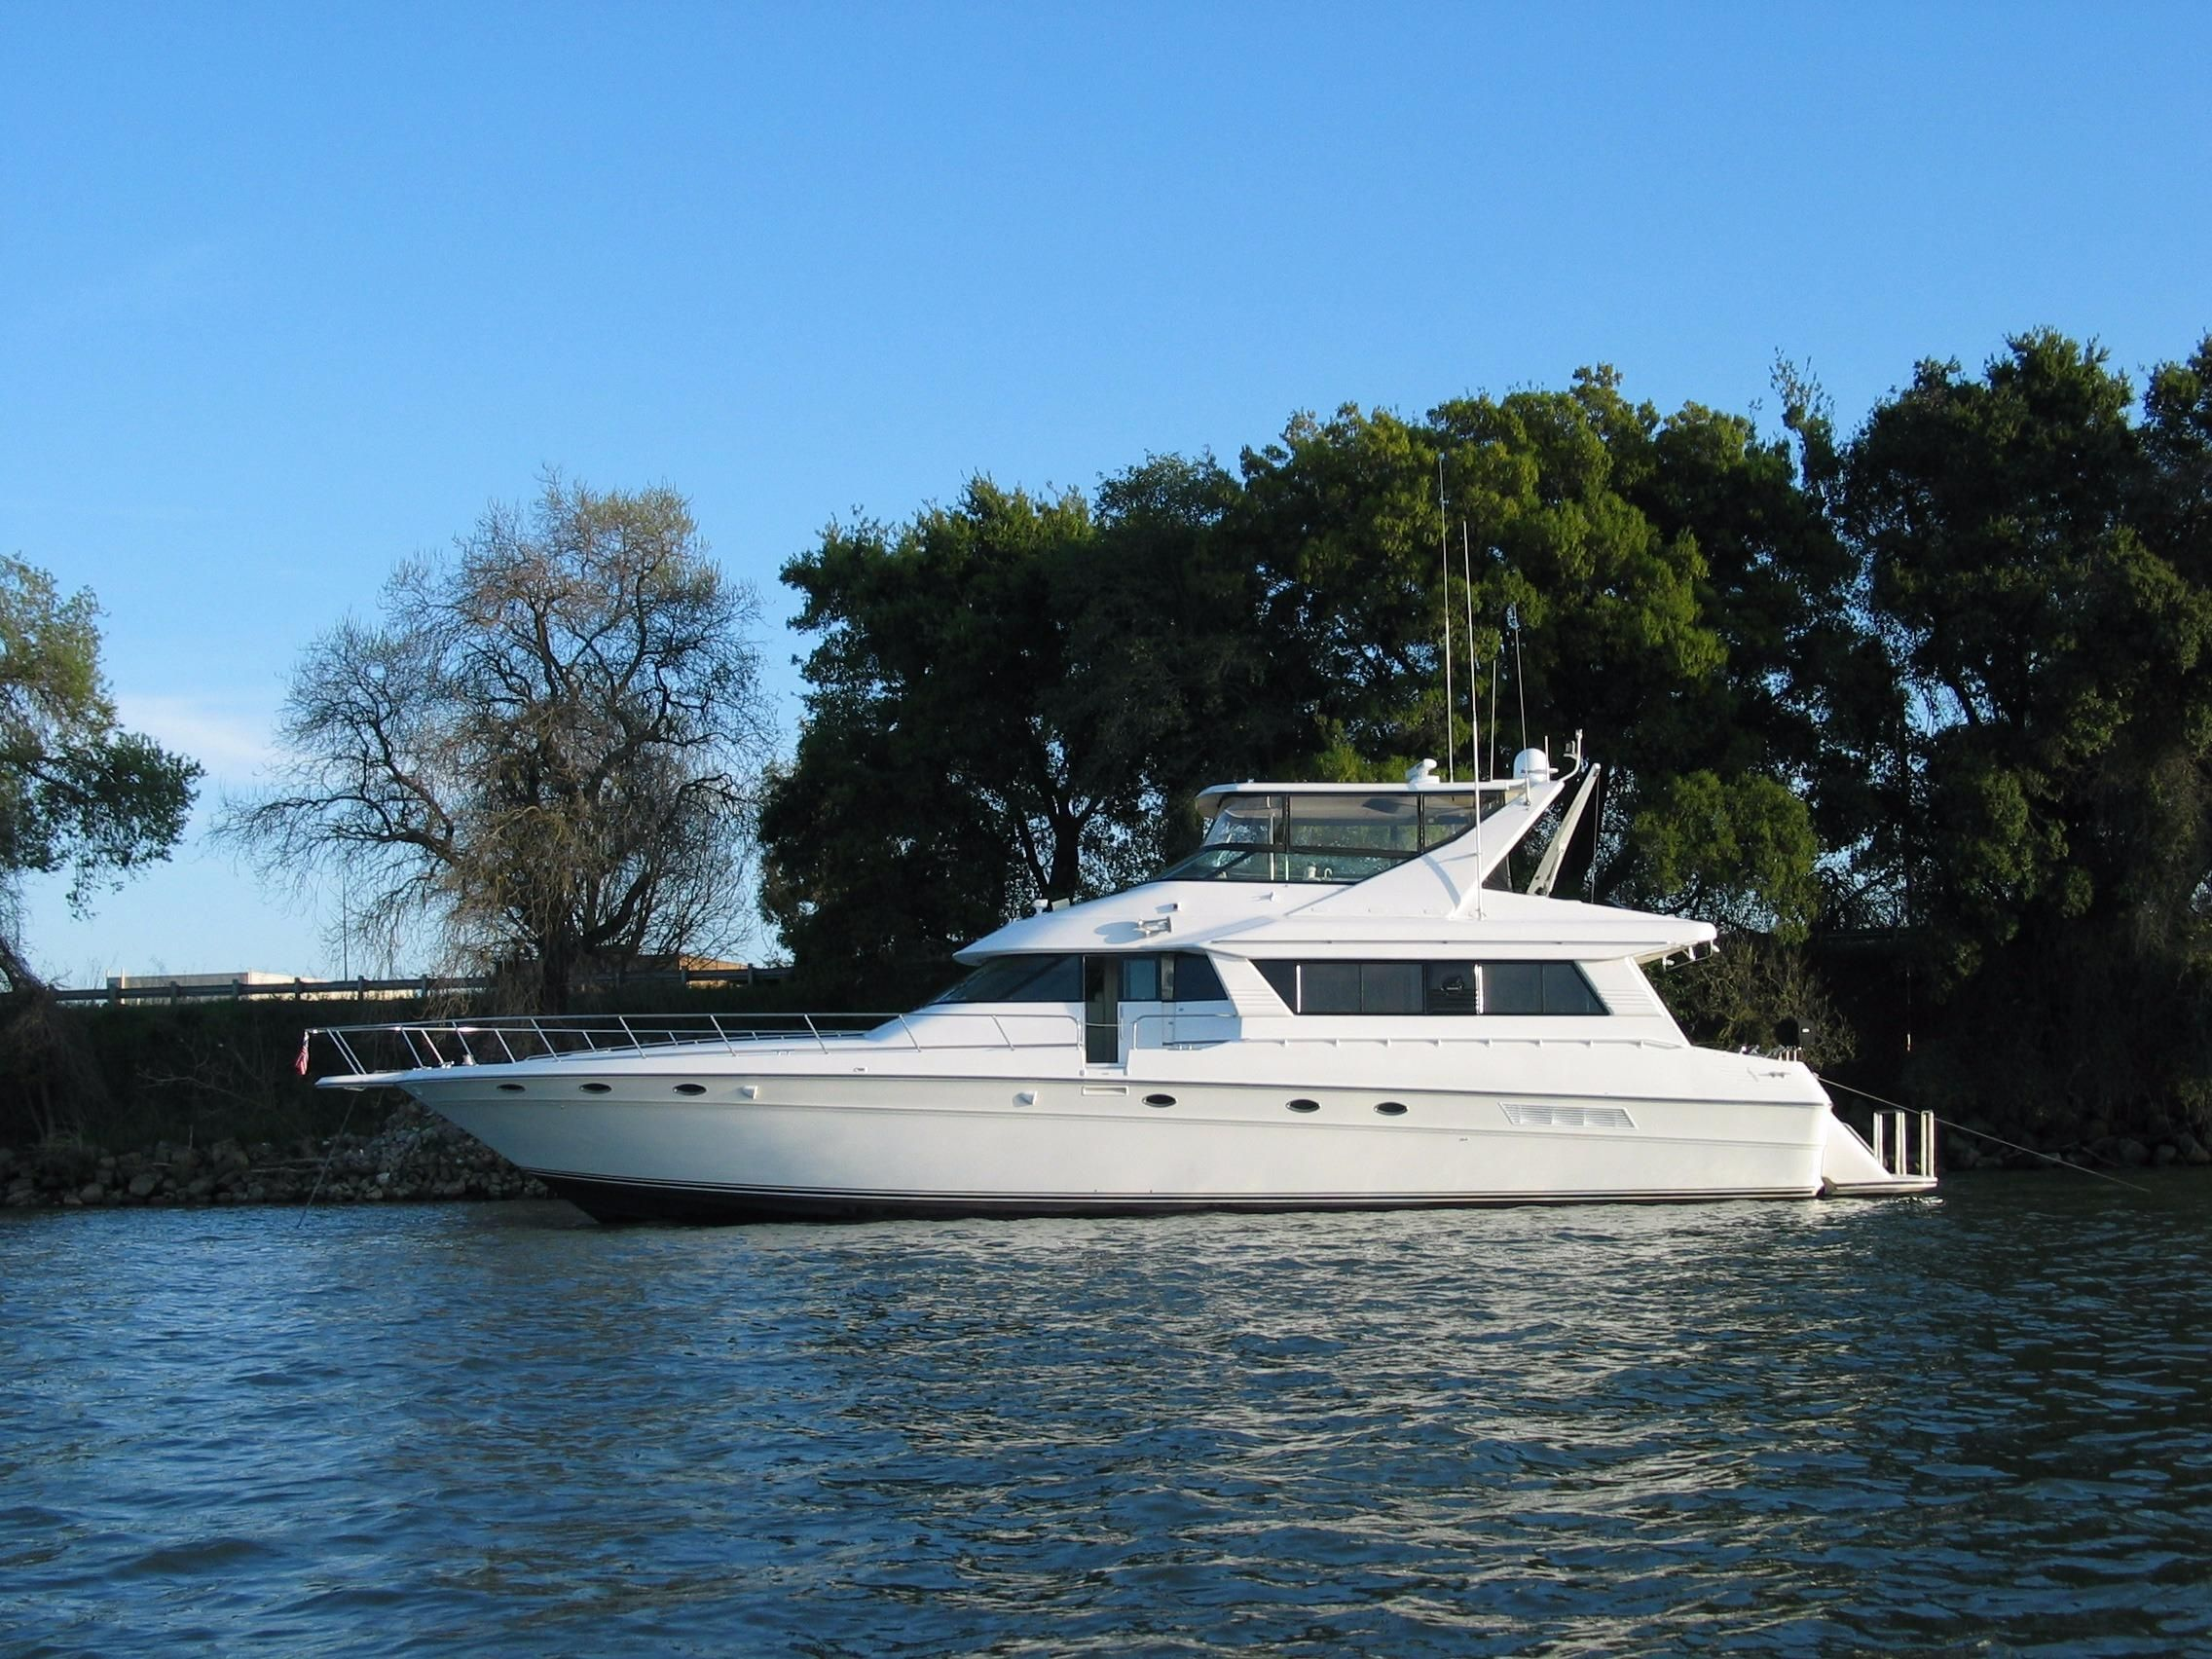 1995 Sea Ray 650 Cockpit Motor Yacht Power Boat For Sale